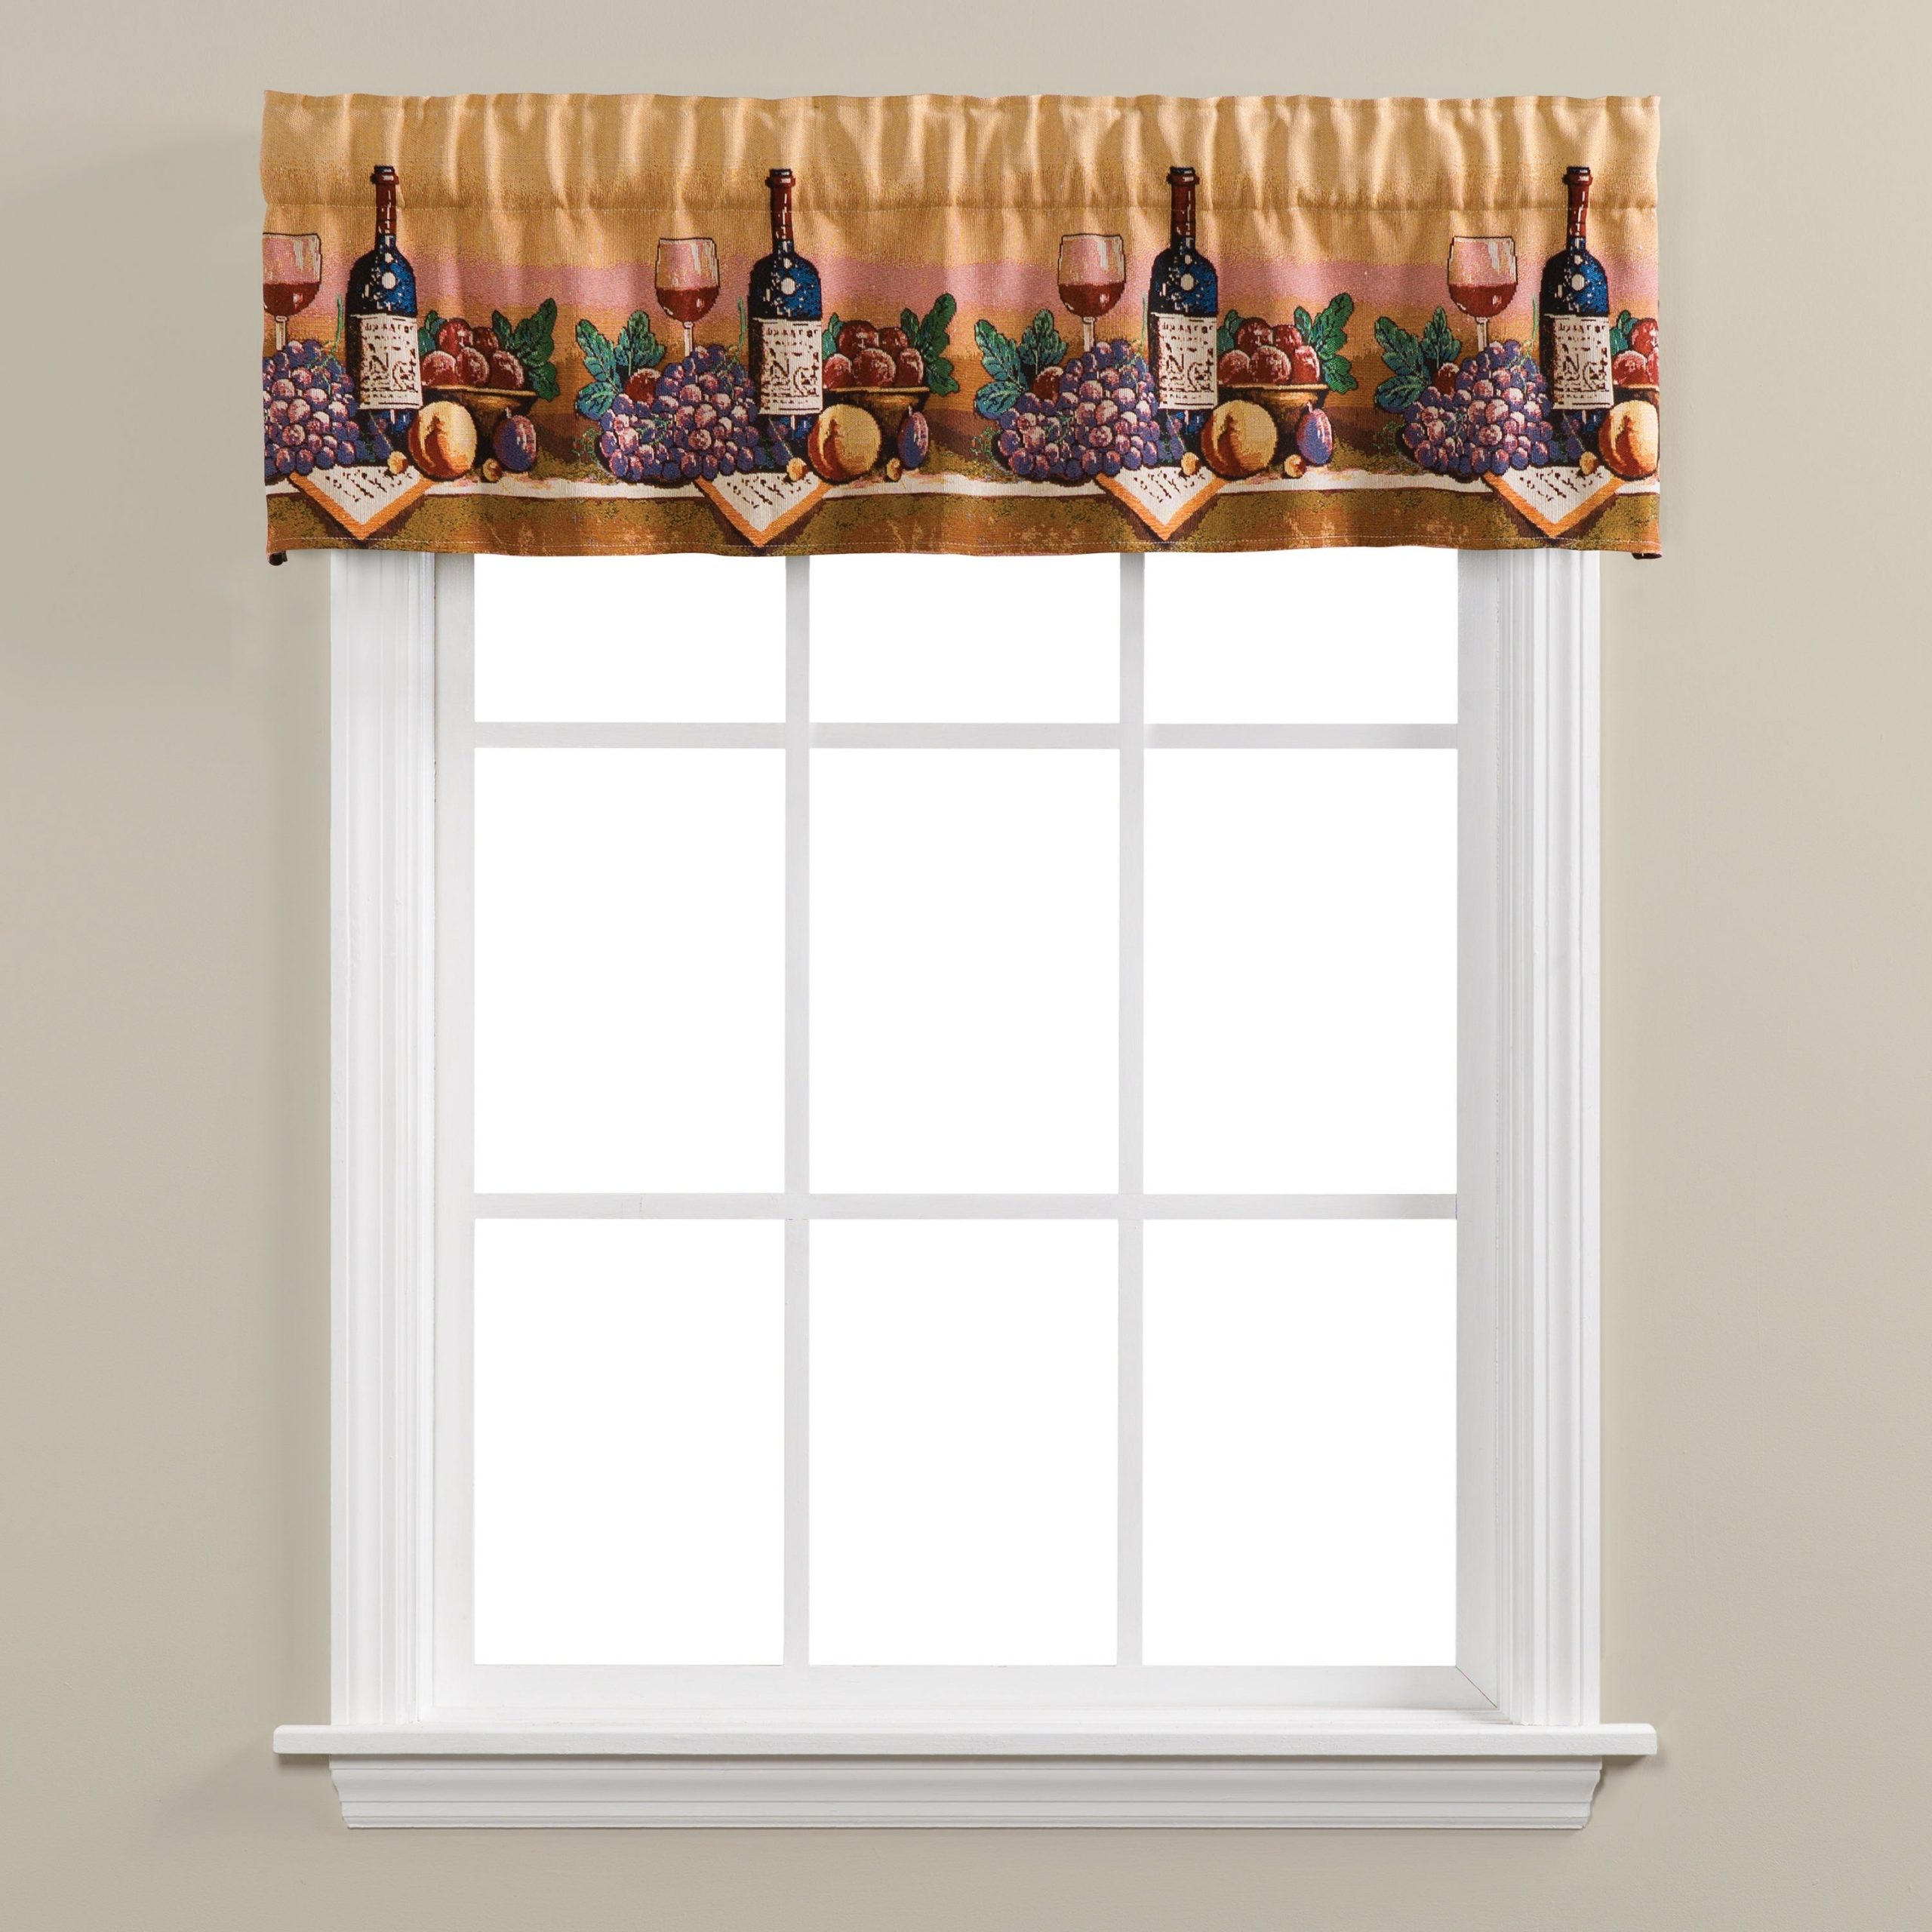 Most Popular Chateau Wines Cottage Kitchen Curtain Tier And Valance Sets Throughout Skl Home Uncork And Unwind Tapestry Valance (Gallery 5 of 20)